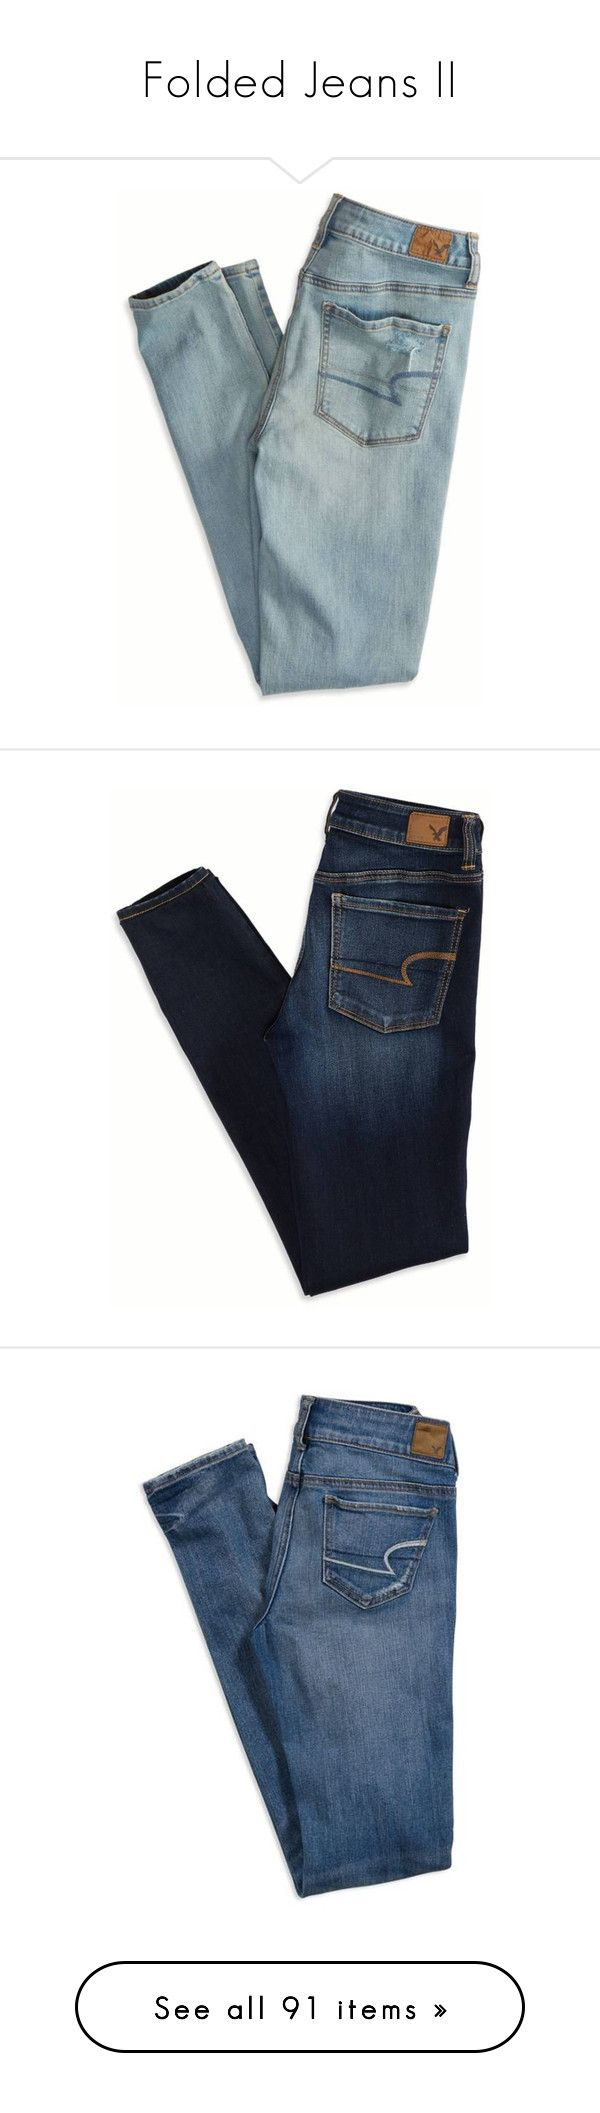 """Folded Jeans II"" by bitbyacullen ❤ liked on Polyvore featuring jeans, pants, bottoms, trousers, american eagle outfitters, folded, pantalones, blue skinny jeans, american eagle outfitters skinny jeans and american eagle outfitters jeans"